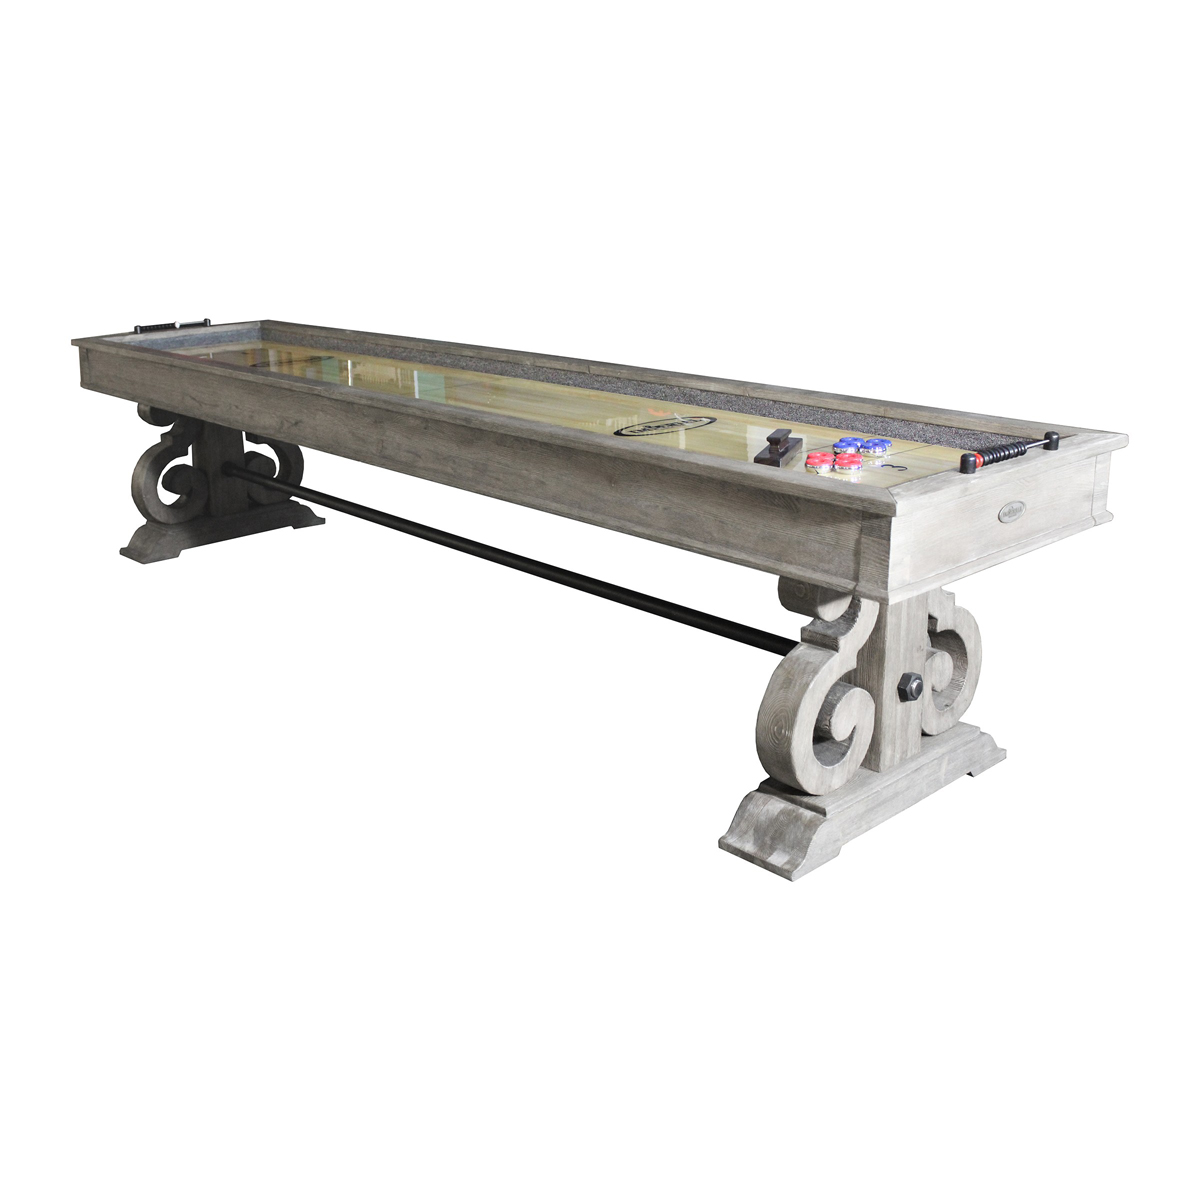 12-ft. shuffleboard table